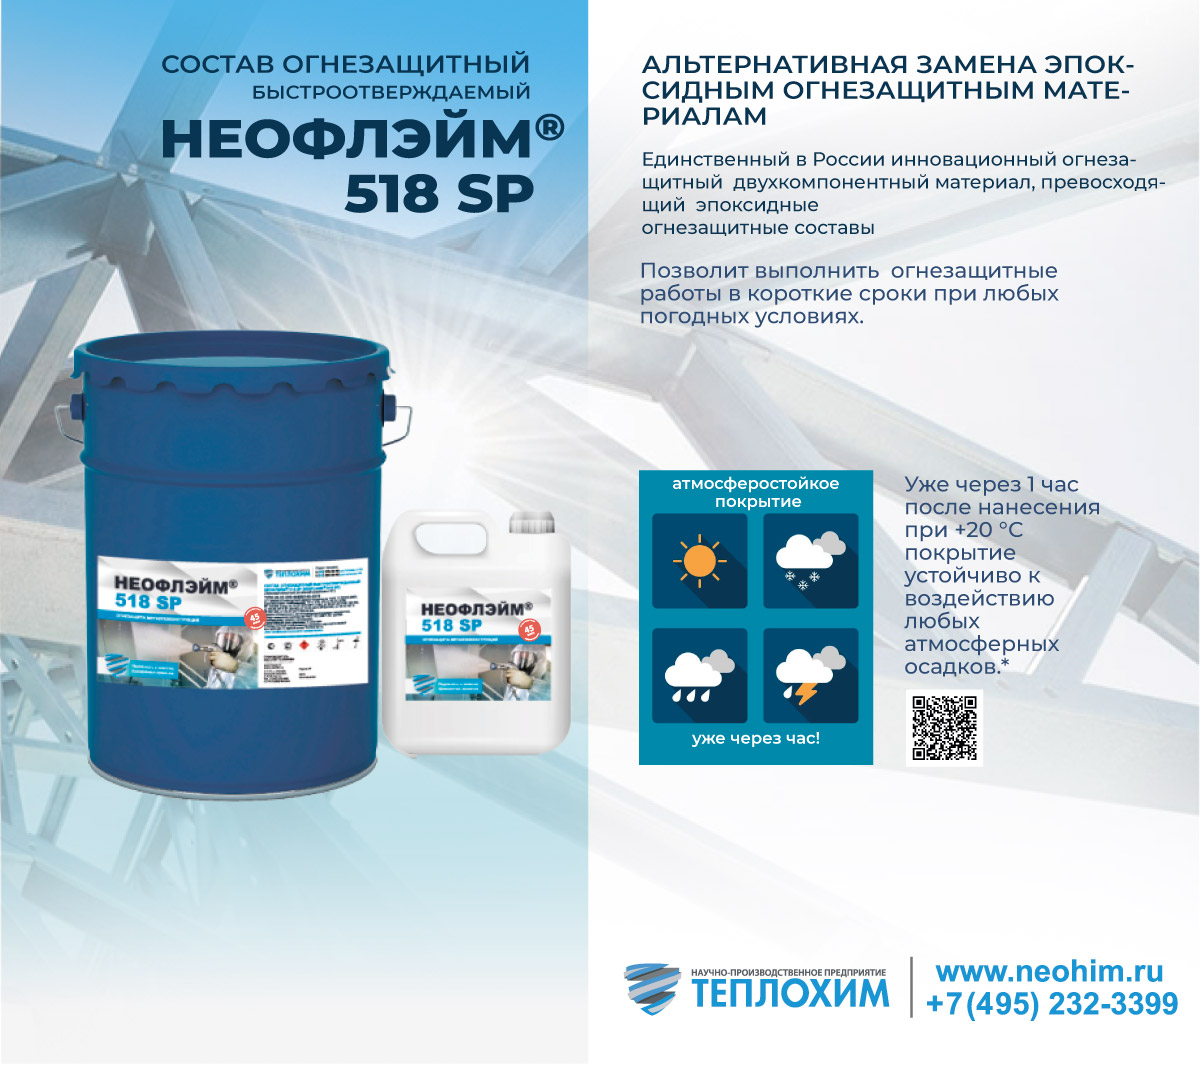 НЕОФЛЭЙМ® 518 SP (NEOFLAME® 518 SP)